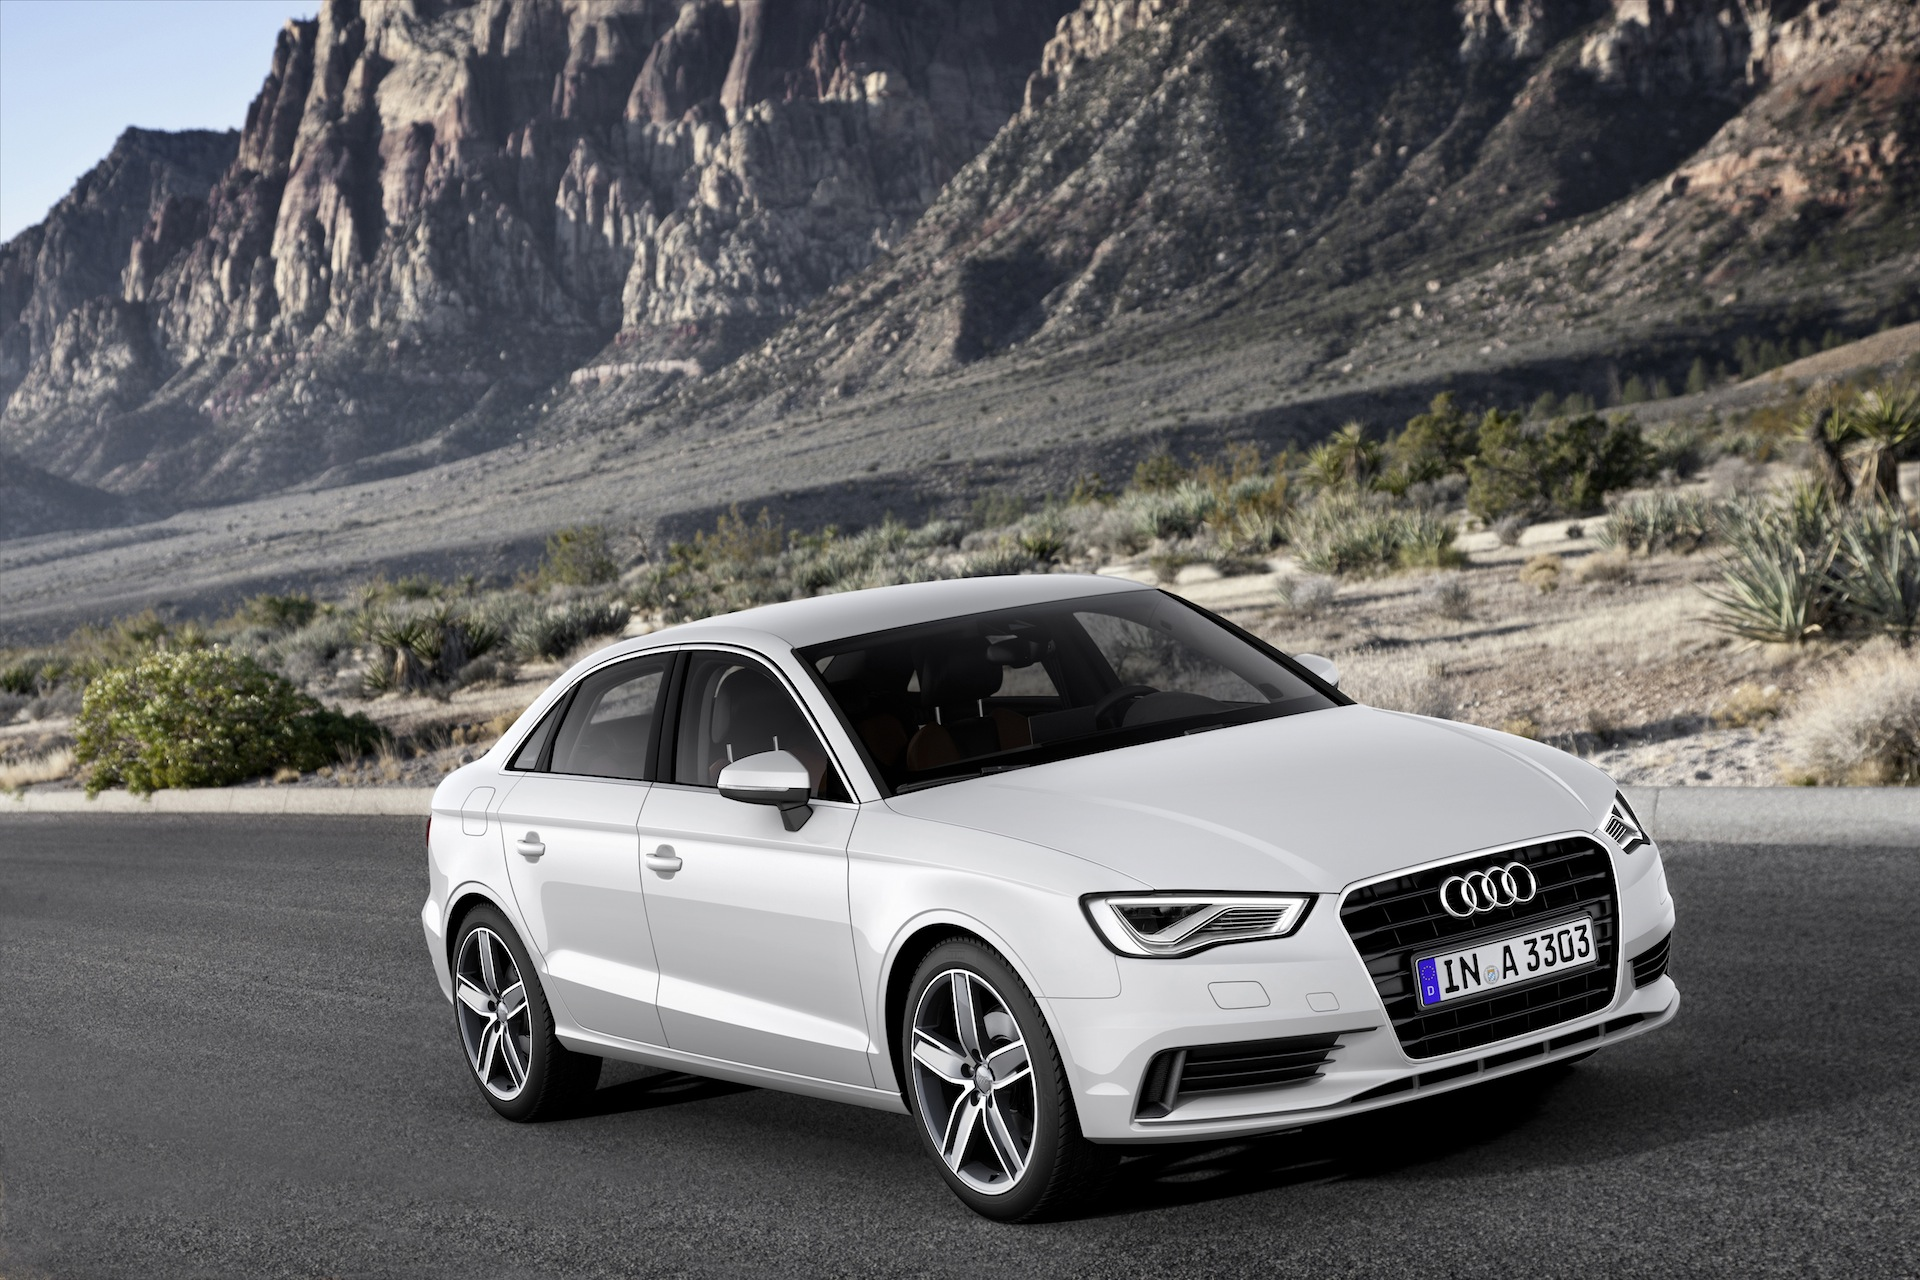 audi reveals pricing and configurator for 2015 a3 range. Black Bedroom Furniture Sets. Home Design Ideas